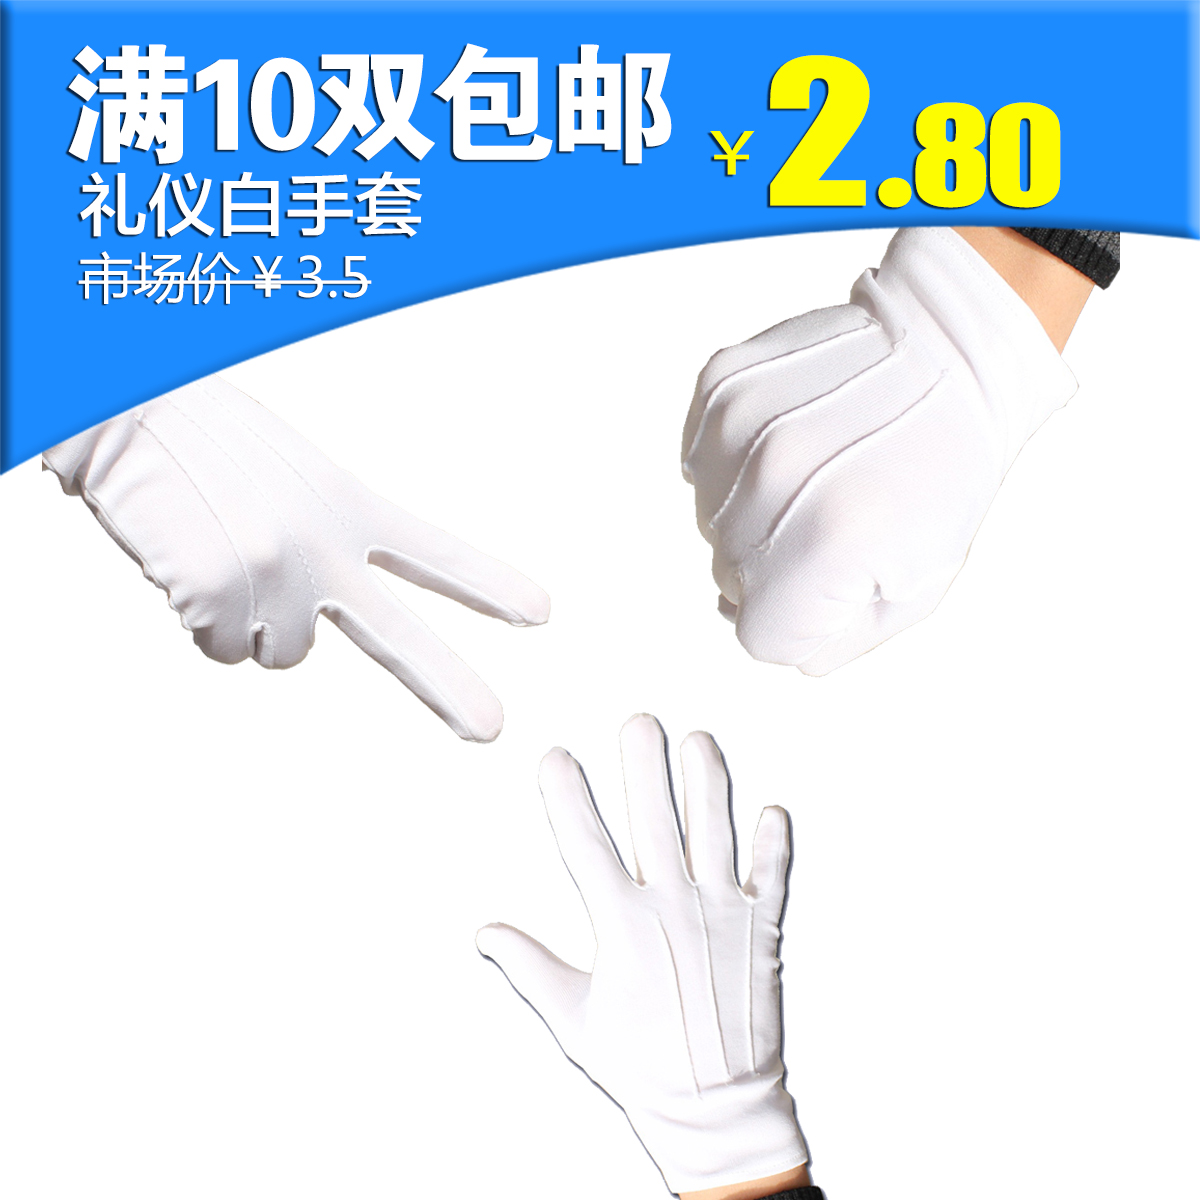 Driving gloves wholesale - Get Quotations Mnsd Three Tendons White Gloves Parade Duty To Perform Ceremonial White Gloves Concierge Security Driving Gloves